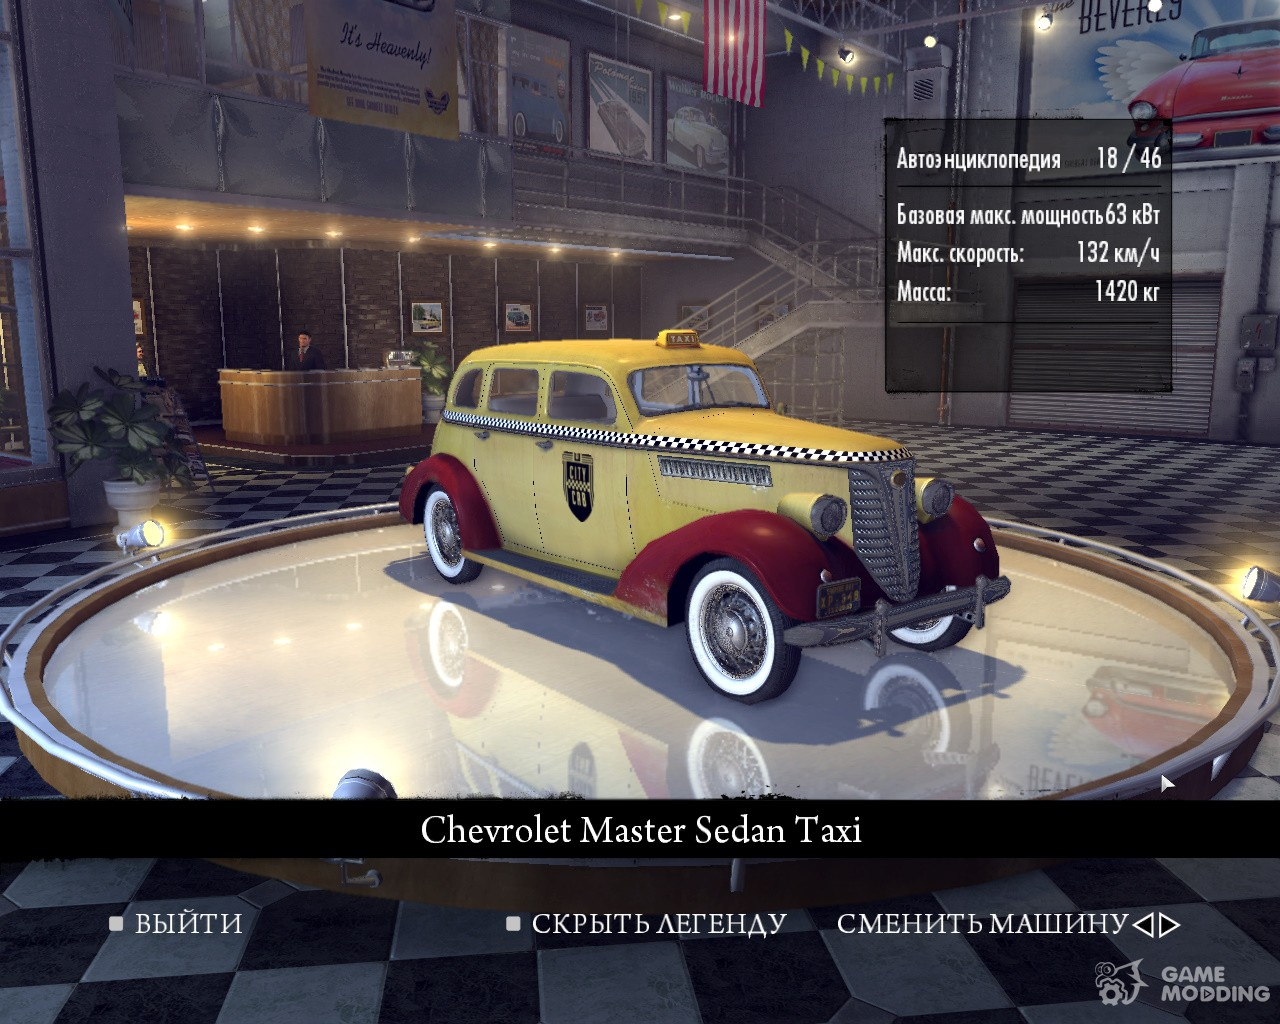 Real Car Names: English names without year for Mafia II